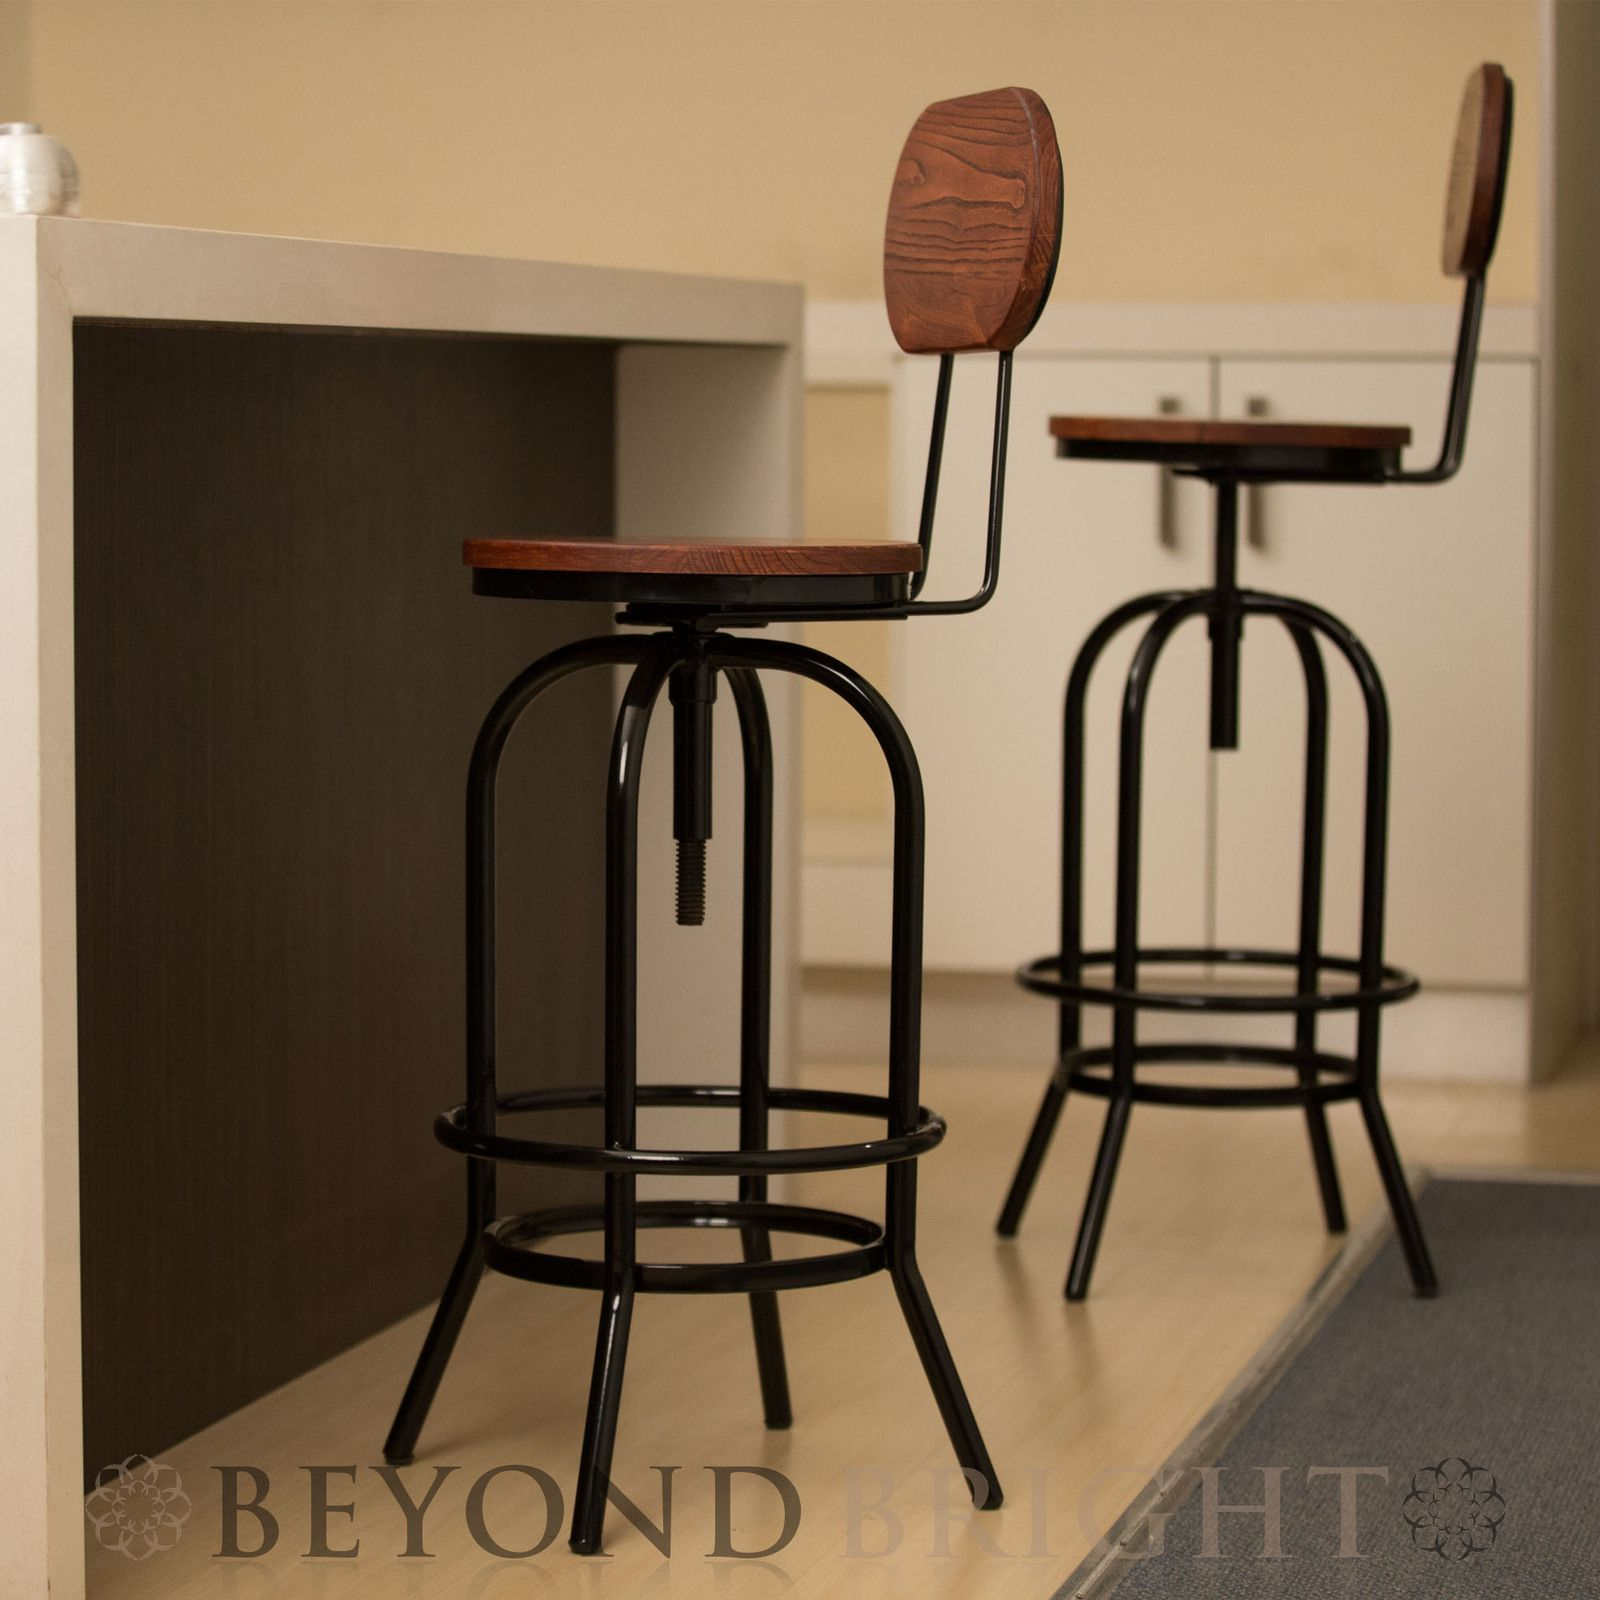 2 X Ari Bar Stool With Removable Back Rest Black Industrial